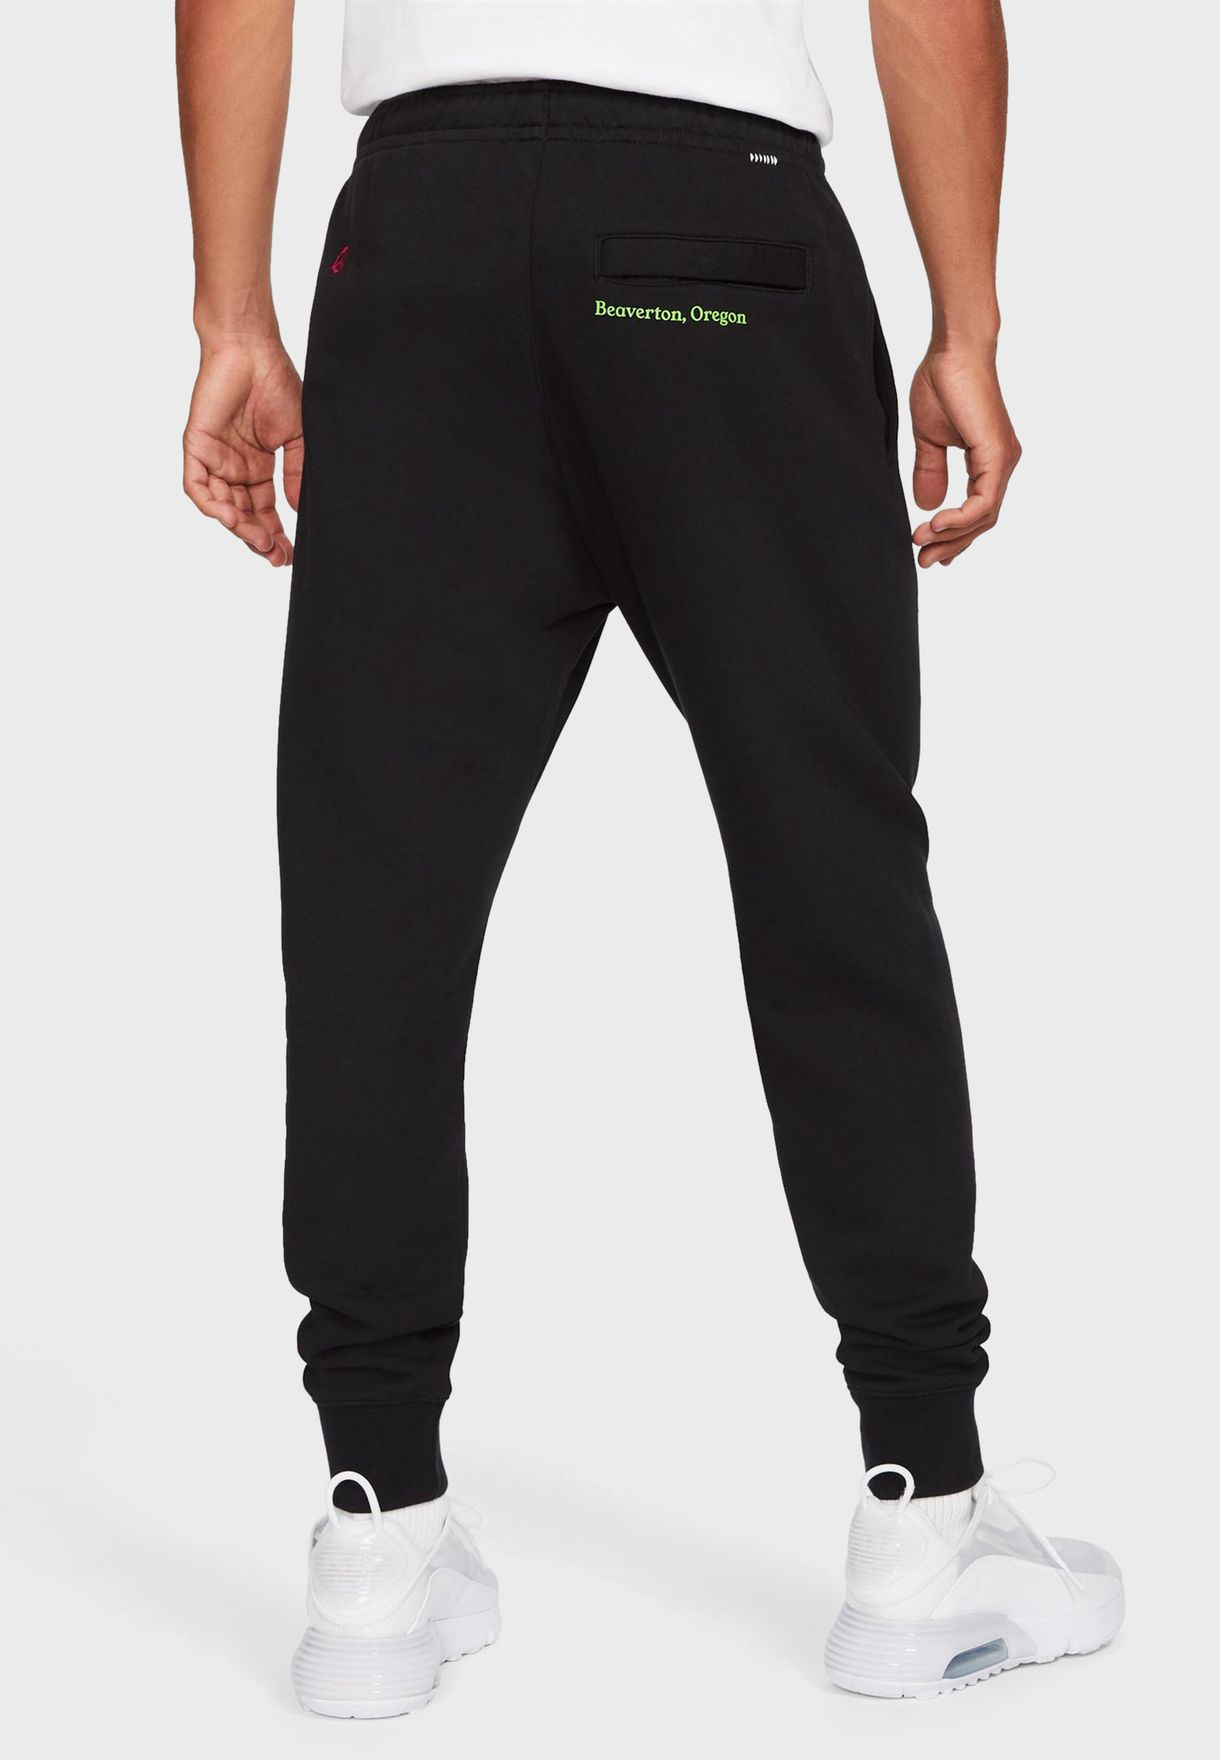 NSW World Tour Cuffed Sweatpants